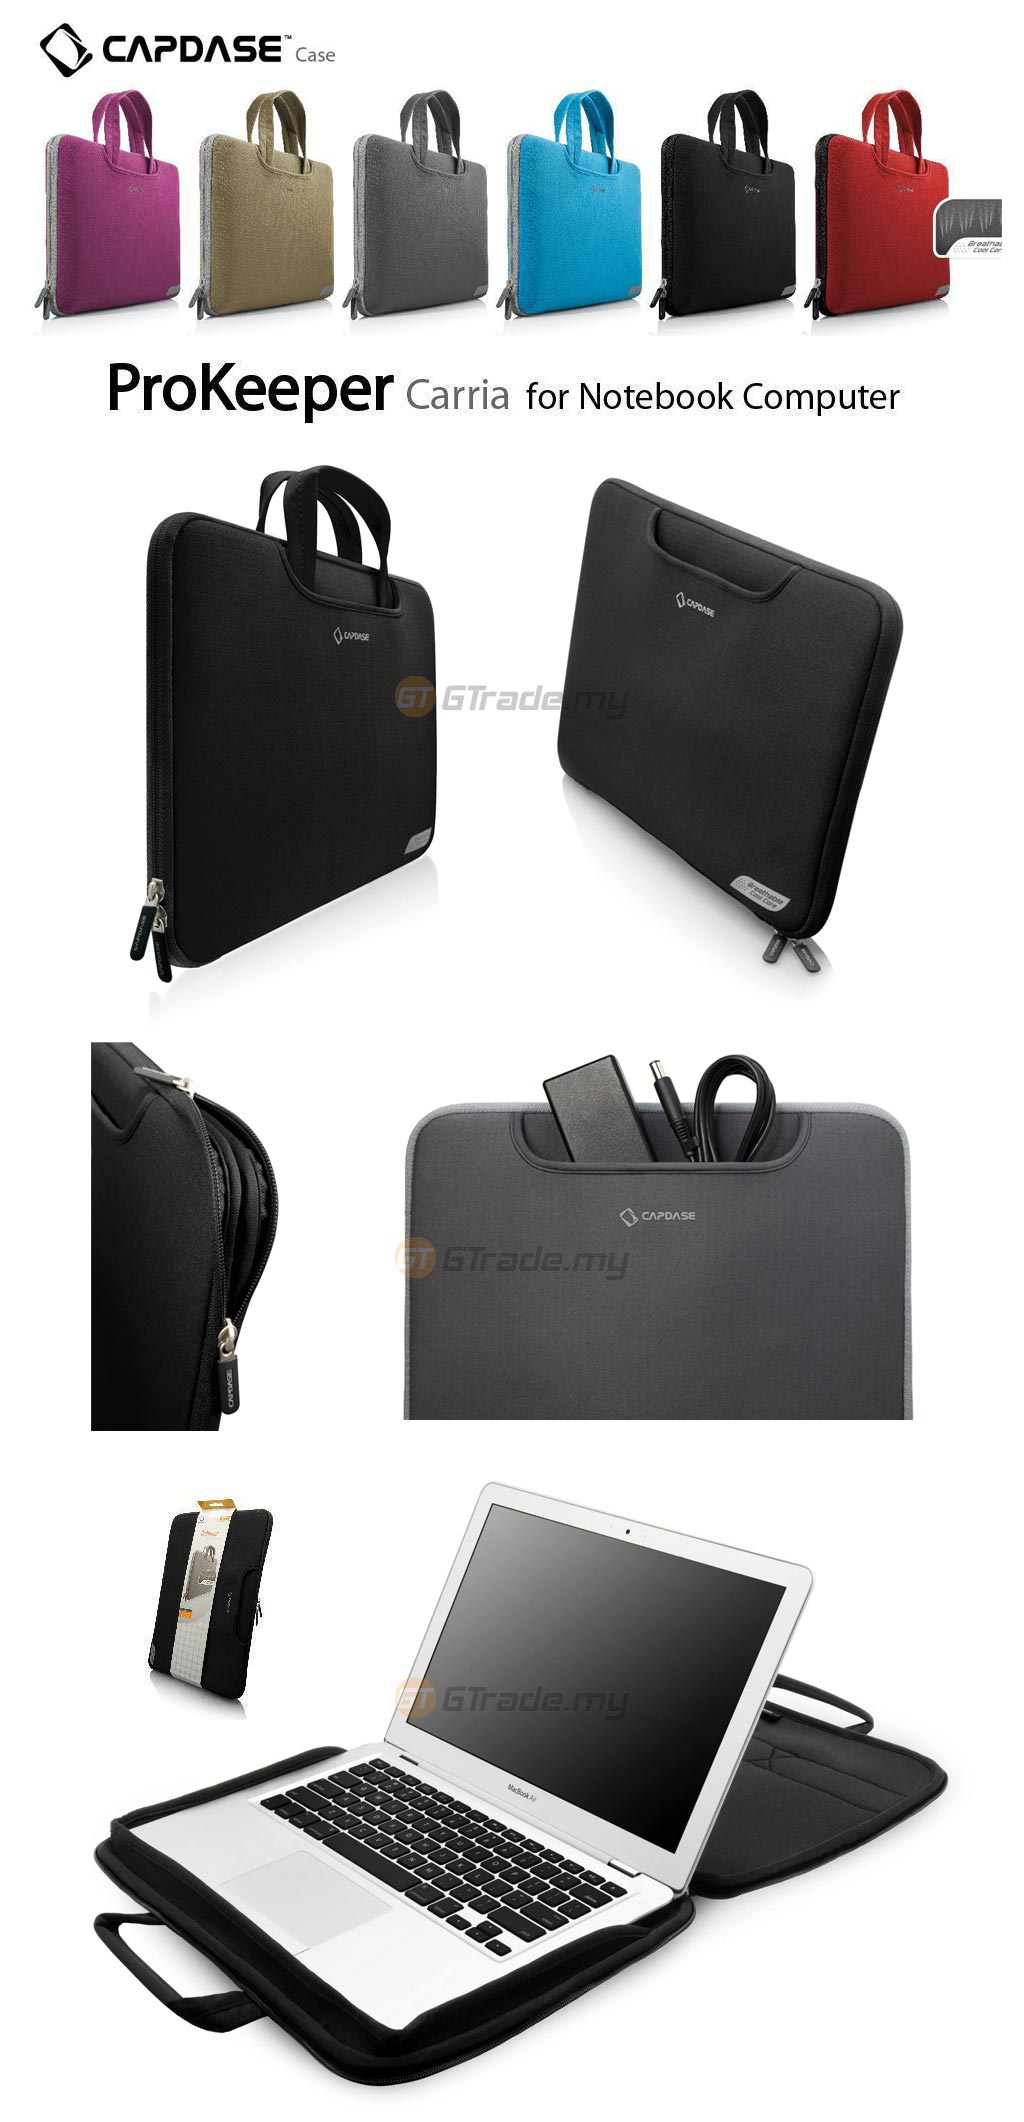 capdase-prokeeper-carria-bag-case-for-notebook-computer-macbook-air-pro-p